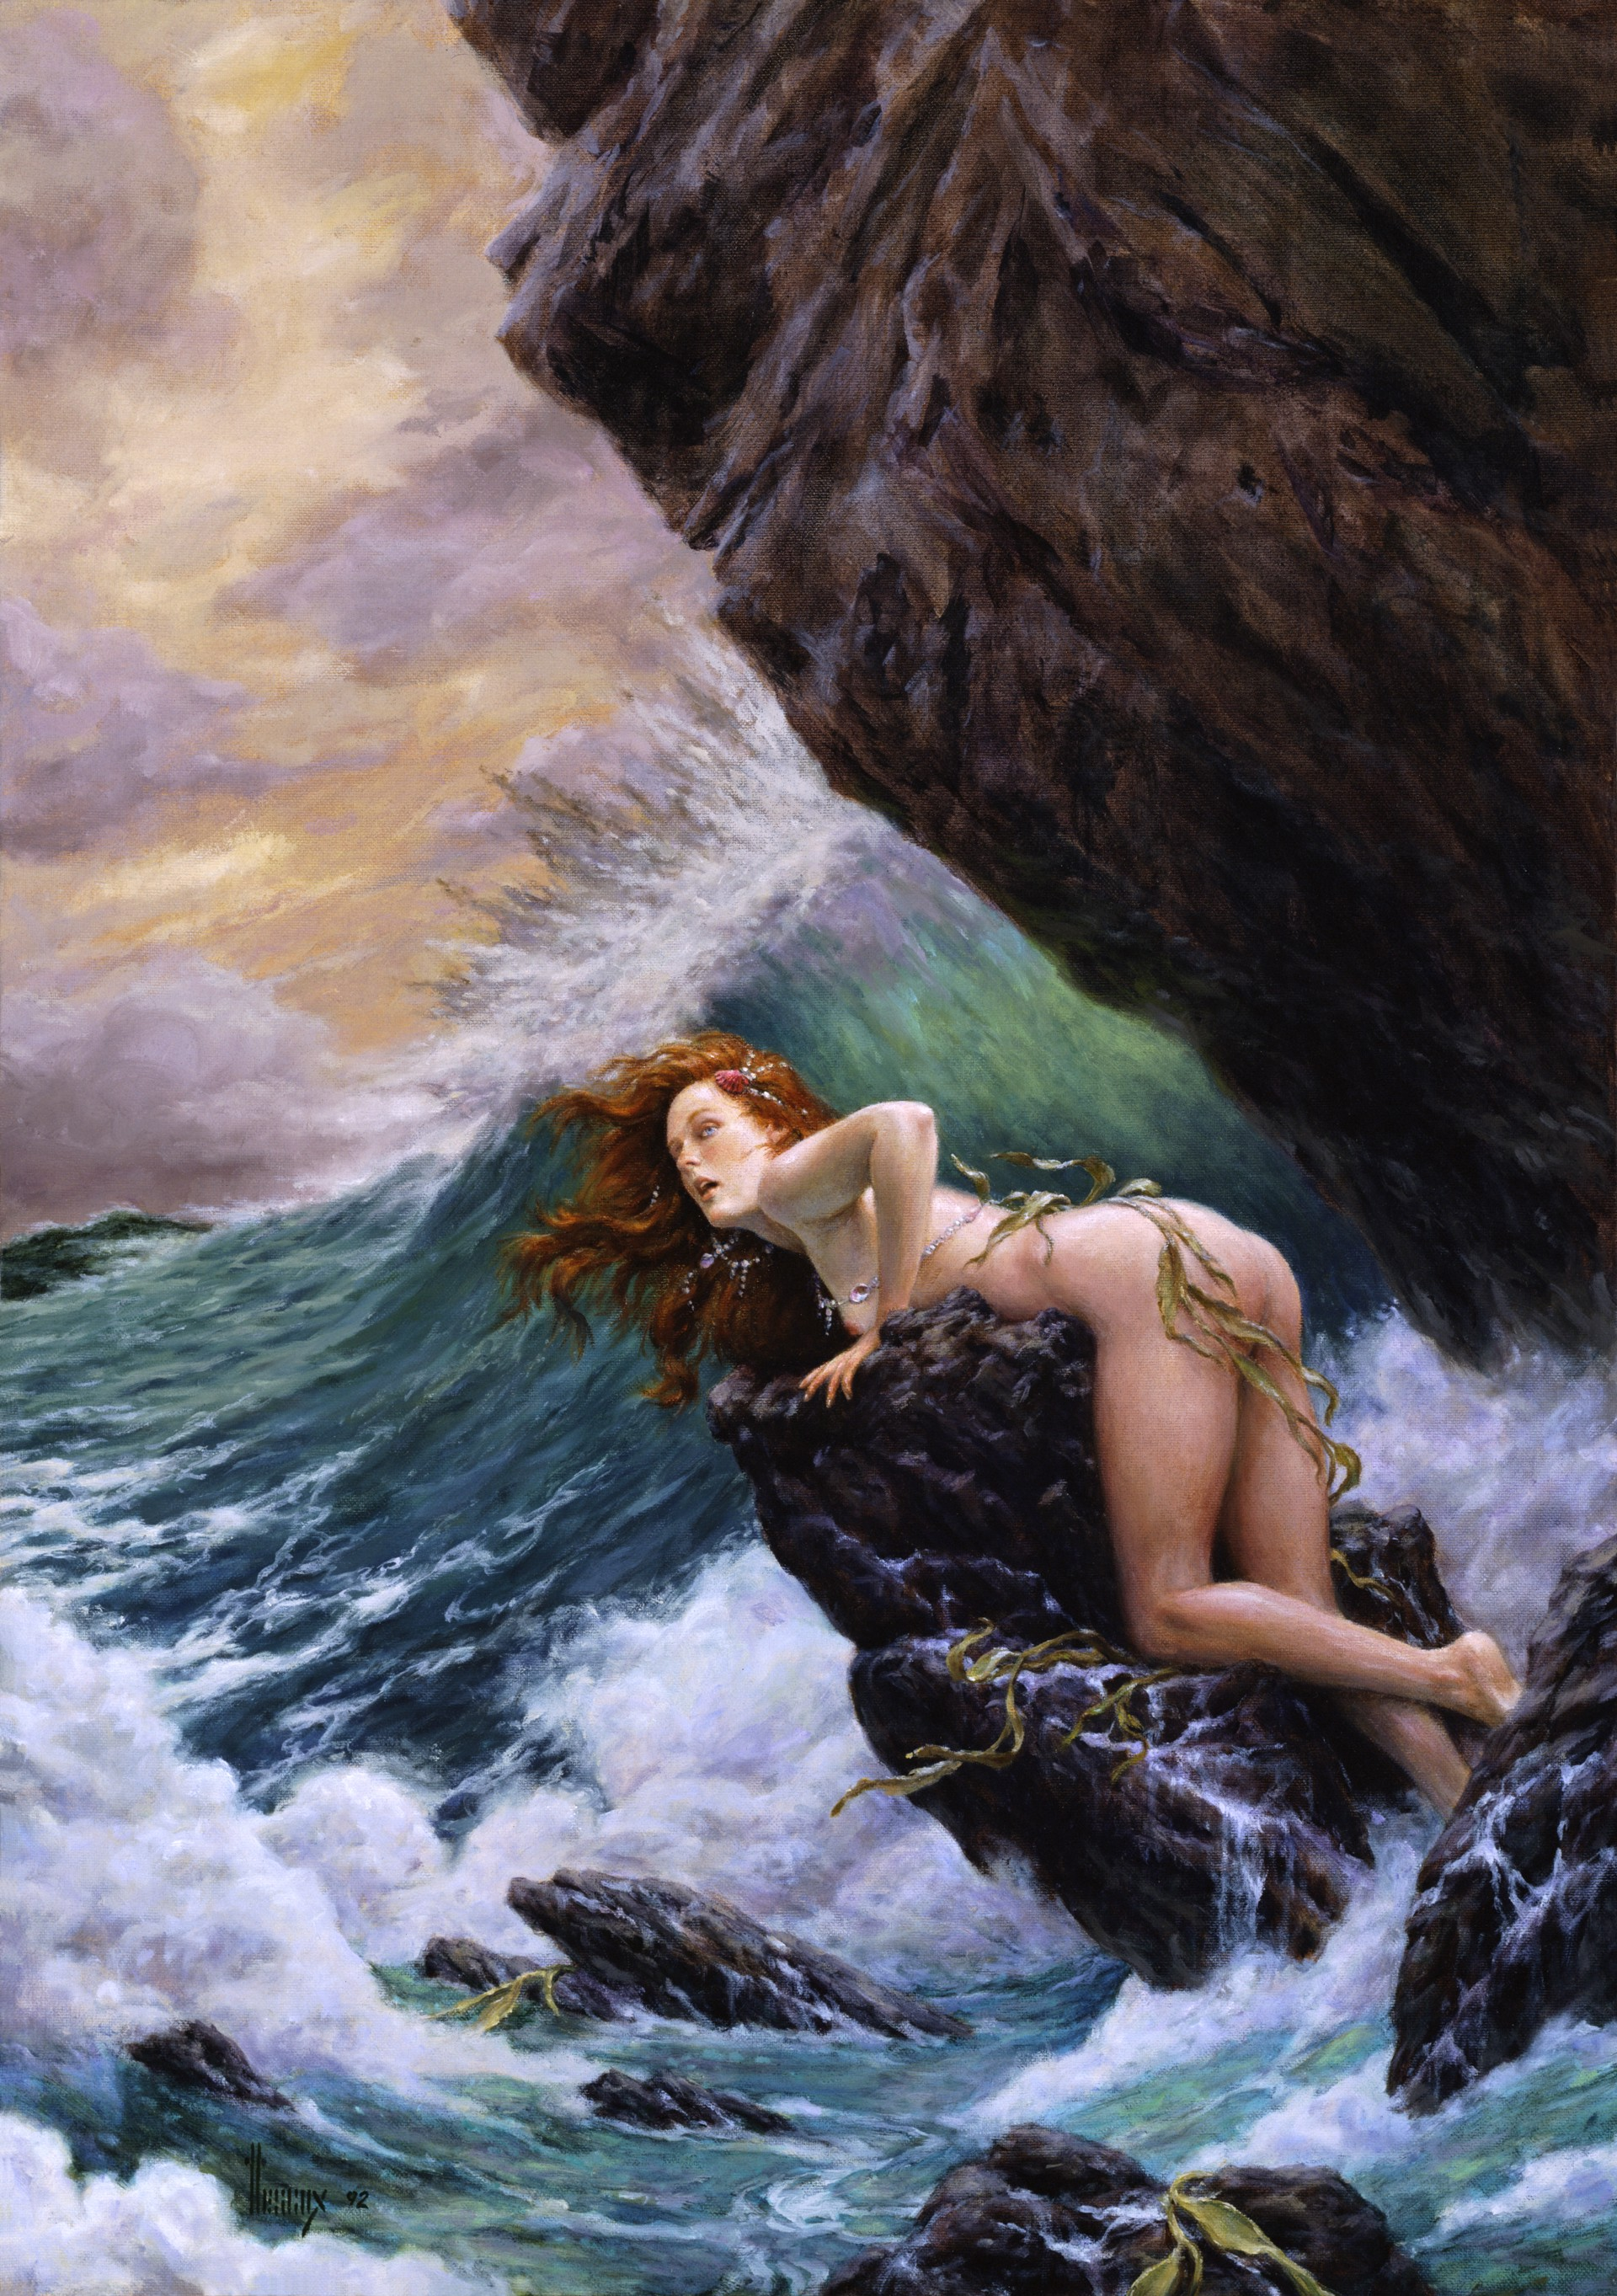 Song of the Siren by Richard Hescox